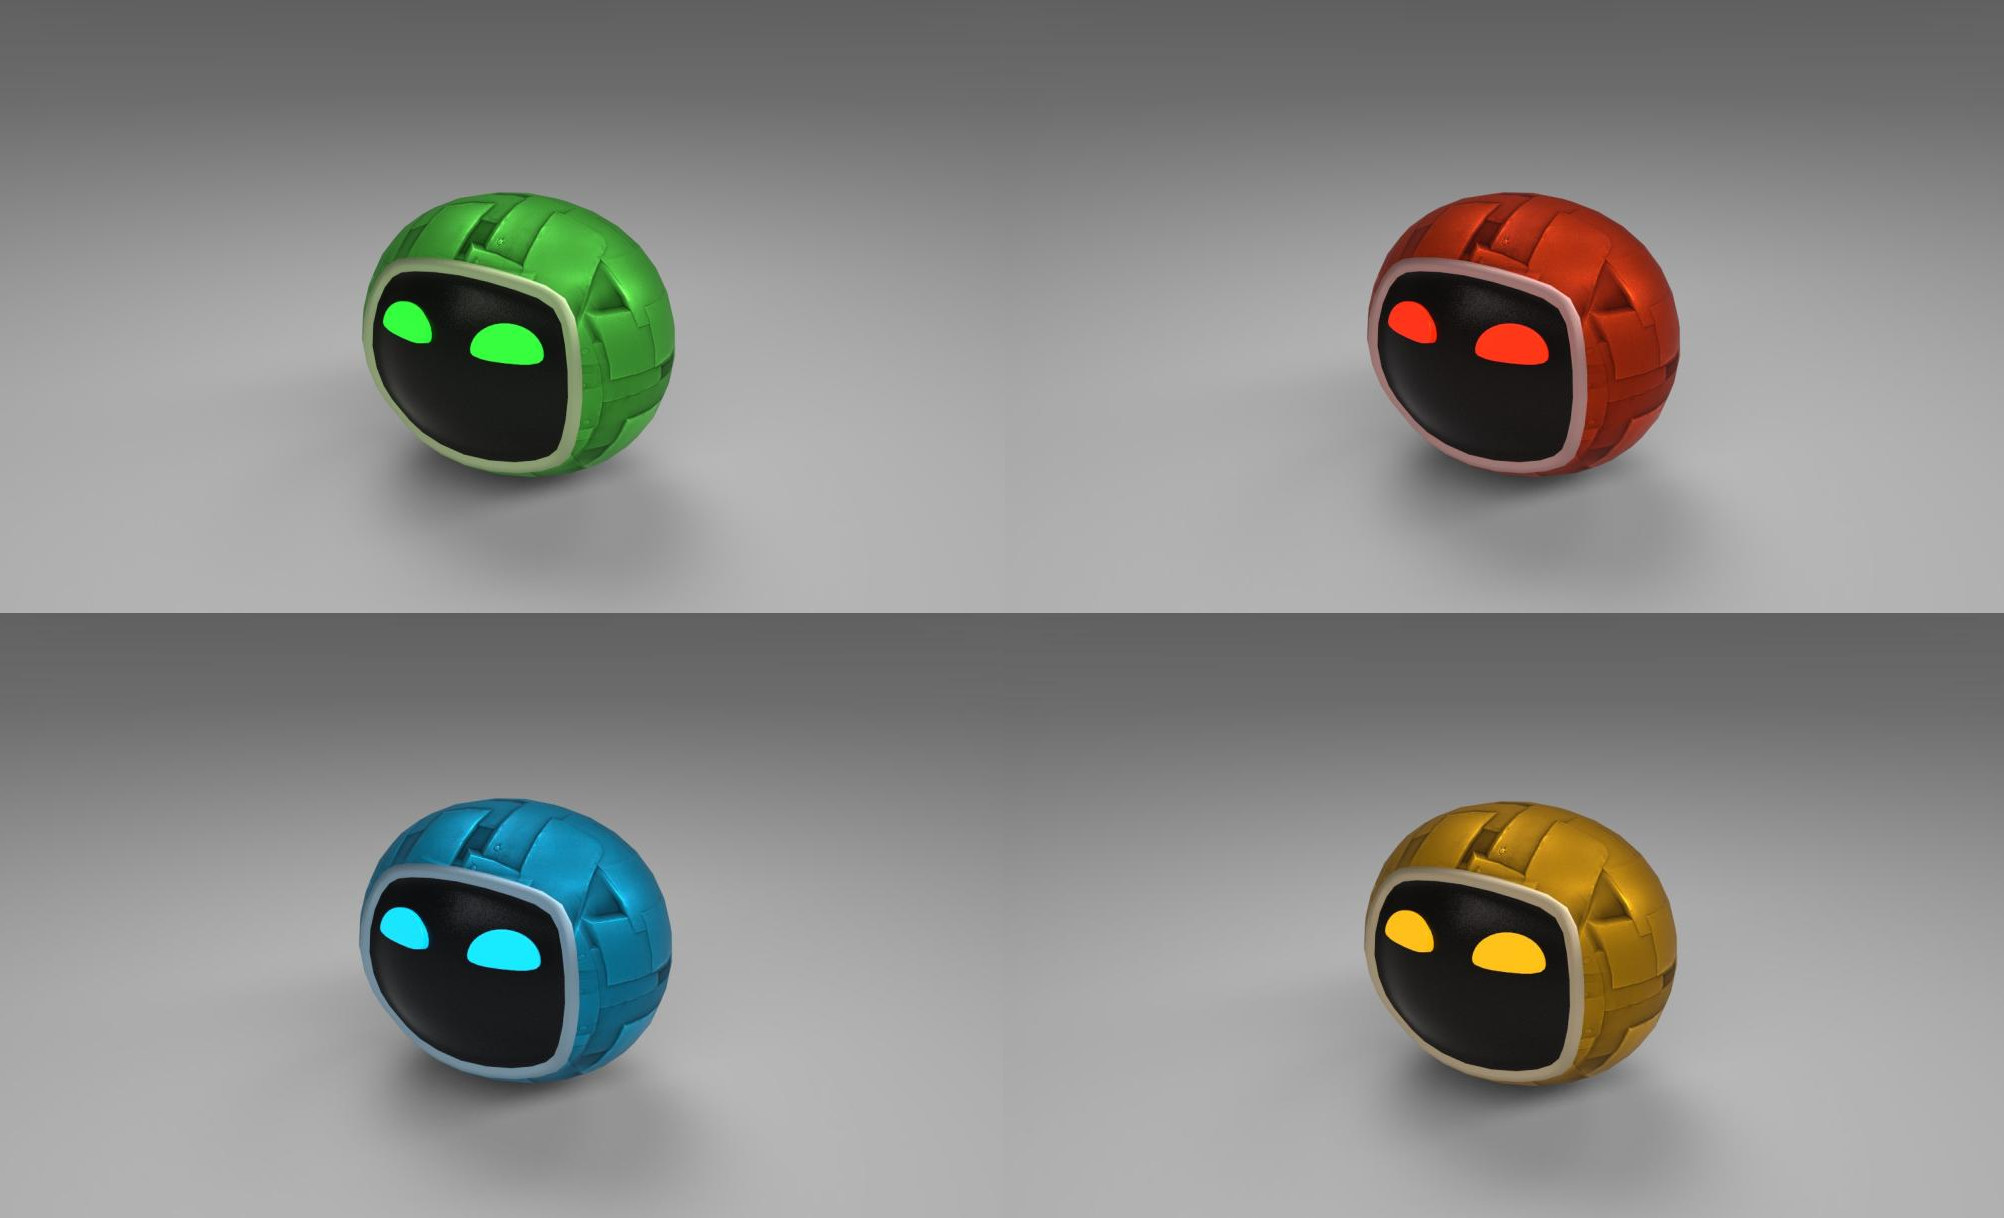 The four different characters. I made the models and did some texturing; with help from another 3D artist on the team that created a material for the characters.